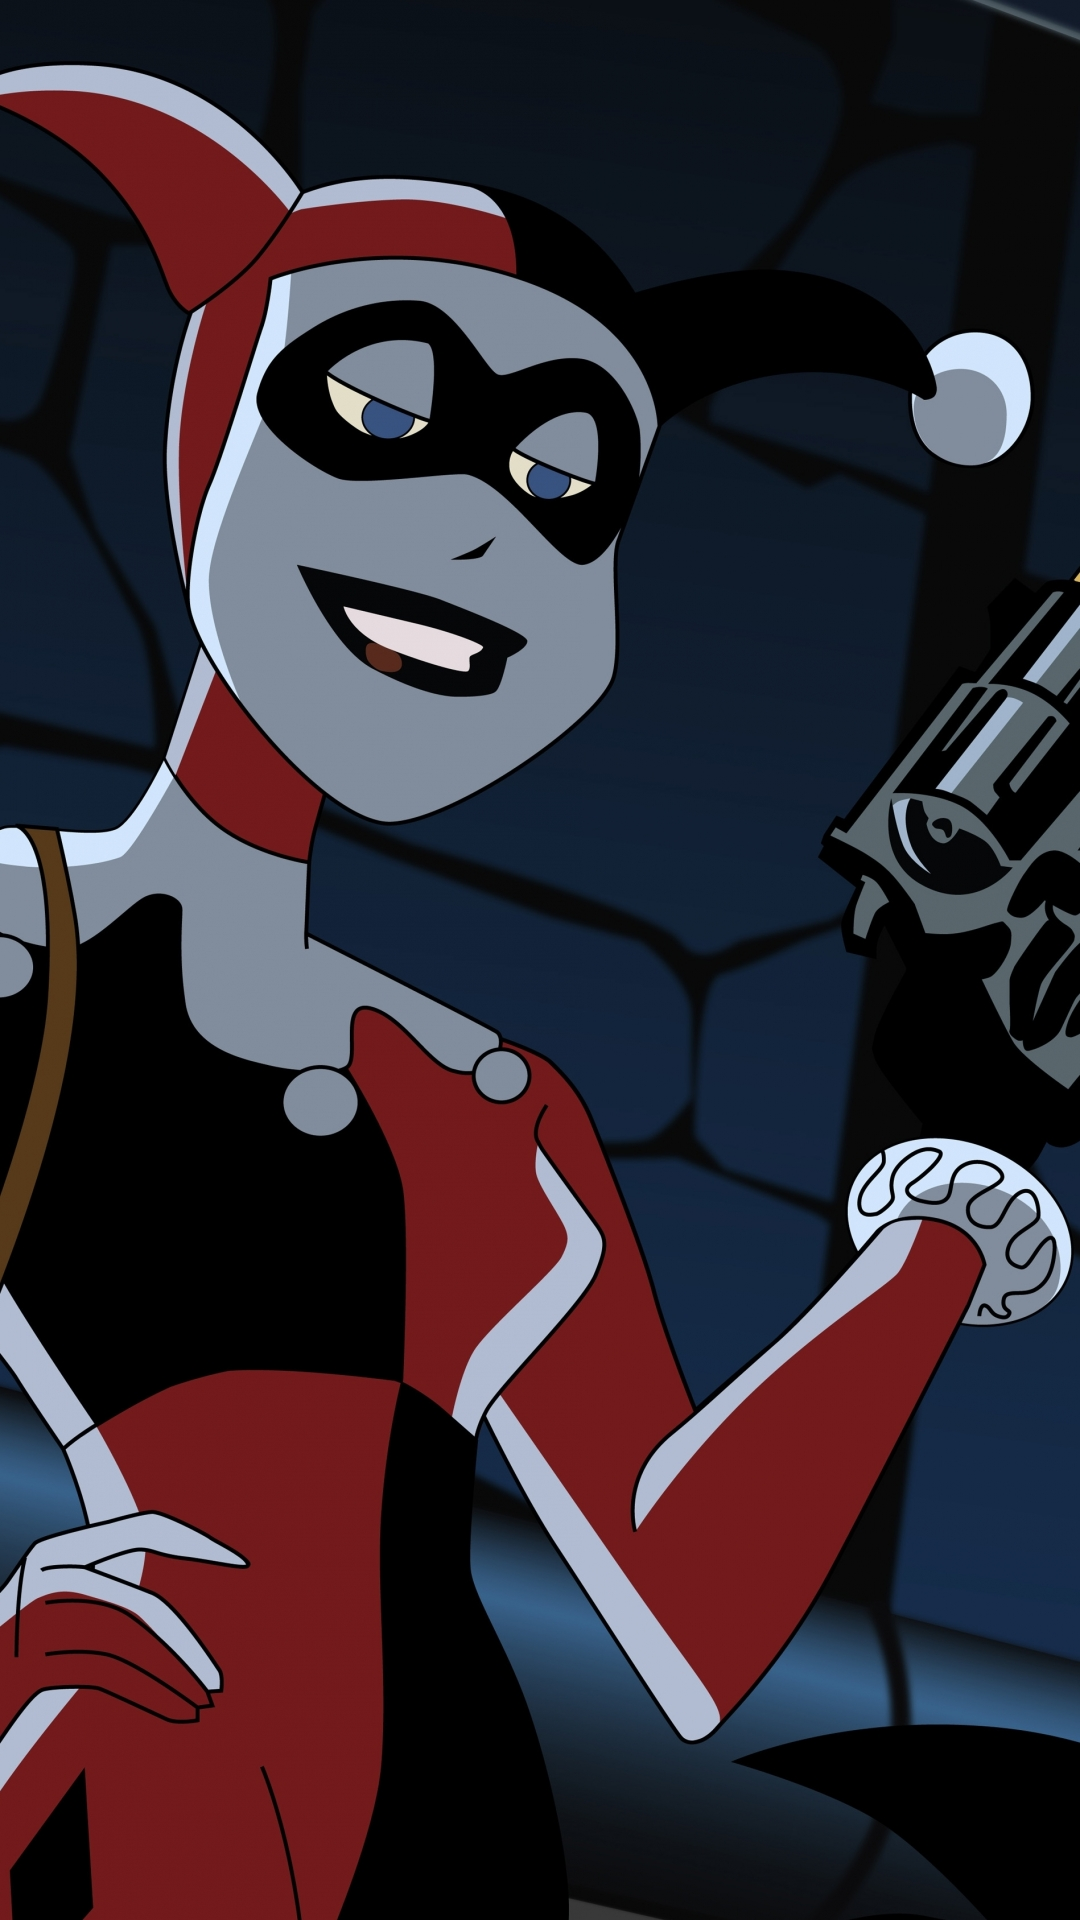 Harley quinn iphone clipart picture black and white stock Harley Quinn - Apple/iPhone 6 Plus - 1080x1920 - 41 Wallpapers picture black and white stock